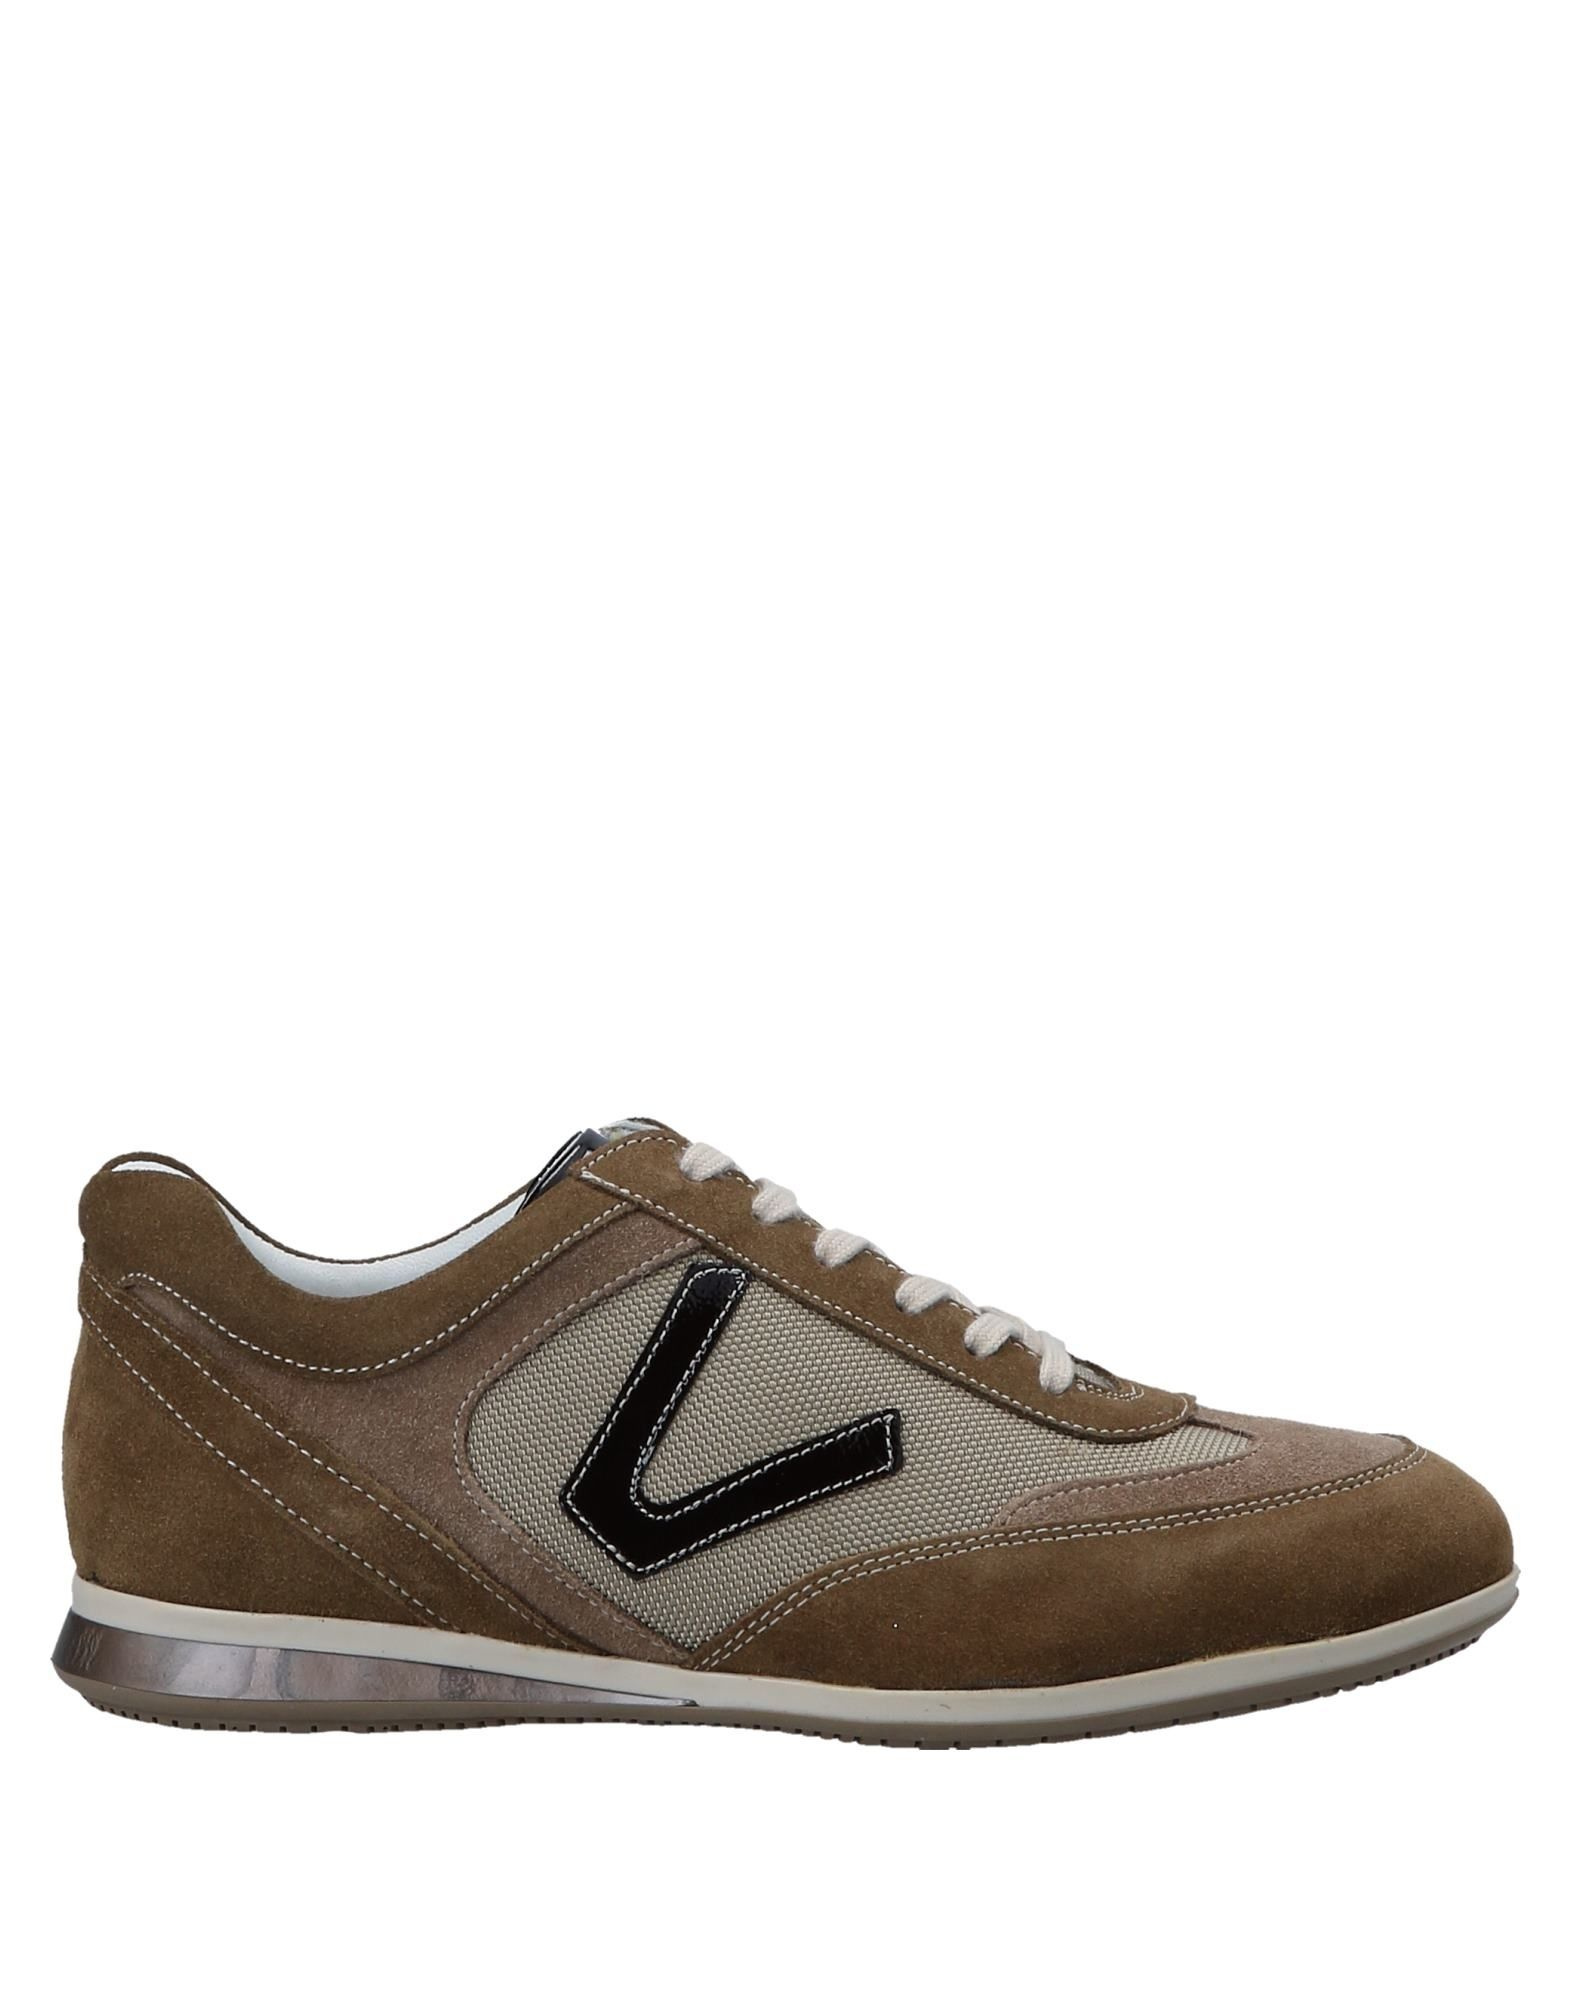 Valleverde Sneakers - Women  Valleverde Sneakers online on  Women United Kingdom - 11553016NP 254ebf